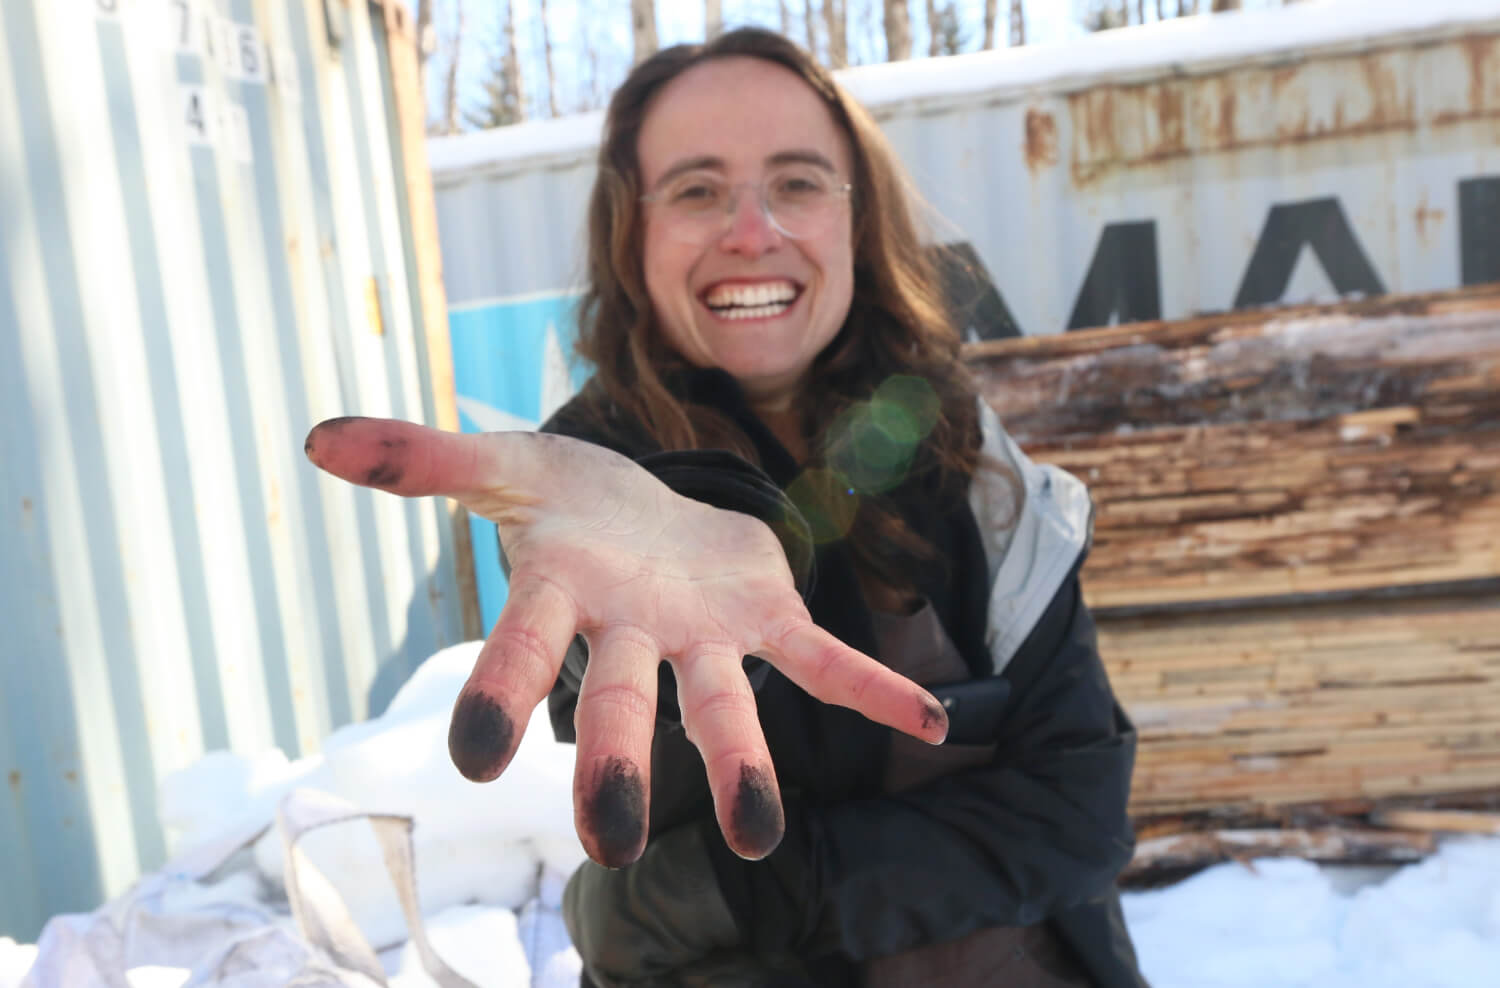 A person smiles at the camera and holds their hand outstretched toward the camera. There are black smudges on the fingerprints.